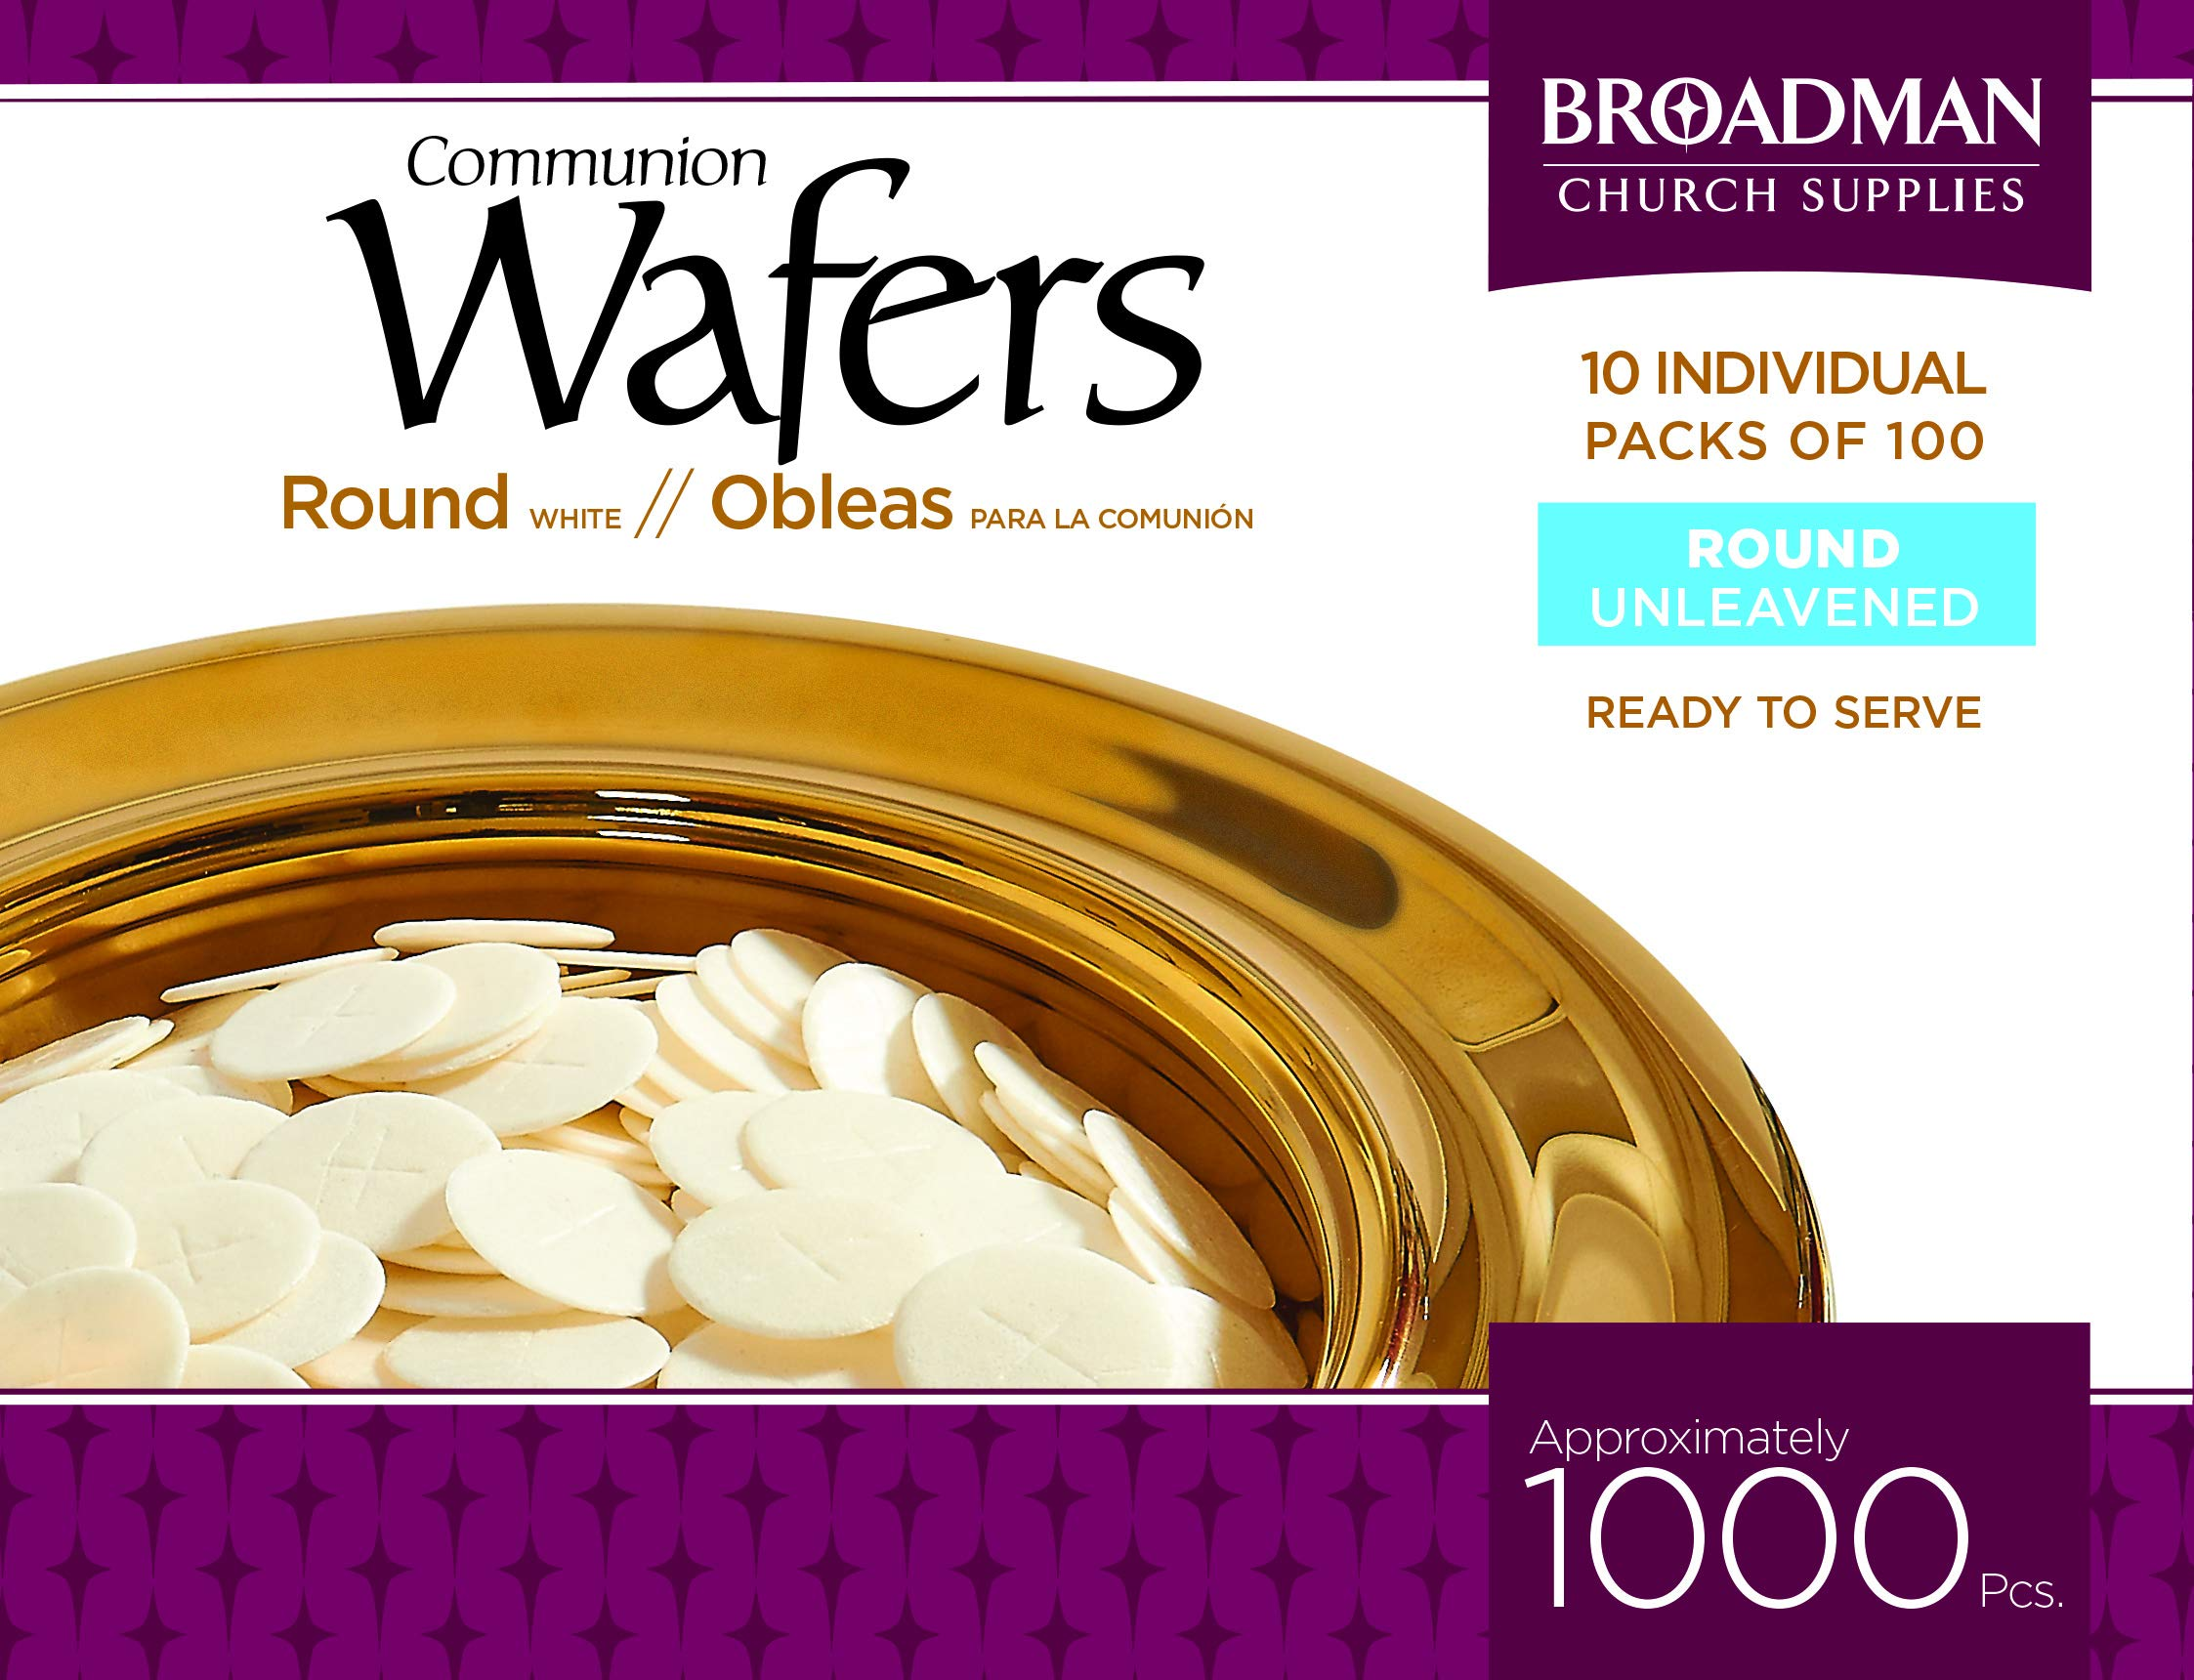 Broadman Church Communion White Wafers - Cross Design (1 - 1/8'') - Box of 1000 (10 Individual Packs of 100 Lord's Supper Wafers) by B&H Publishing Group